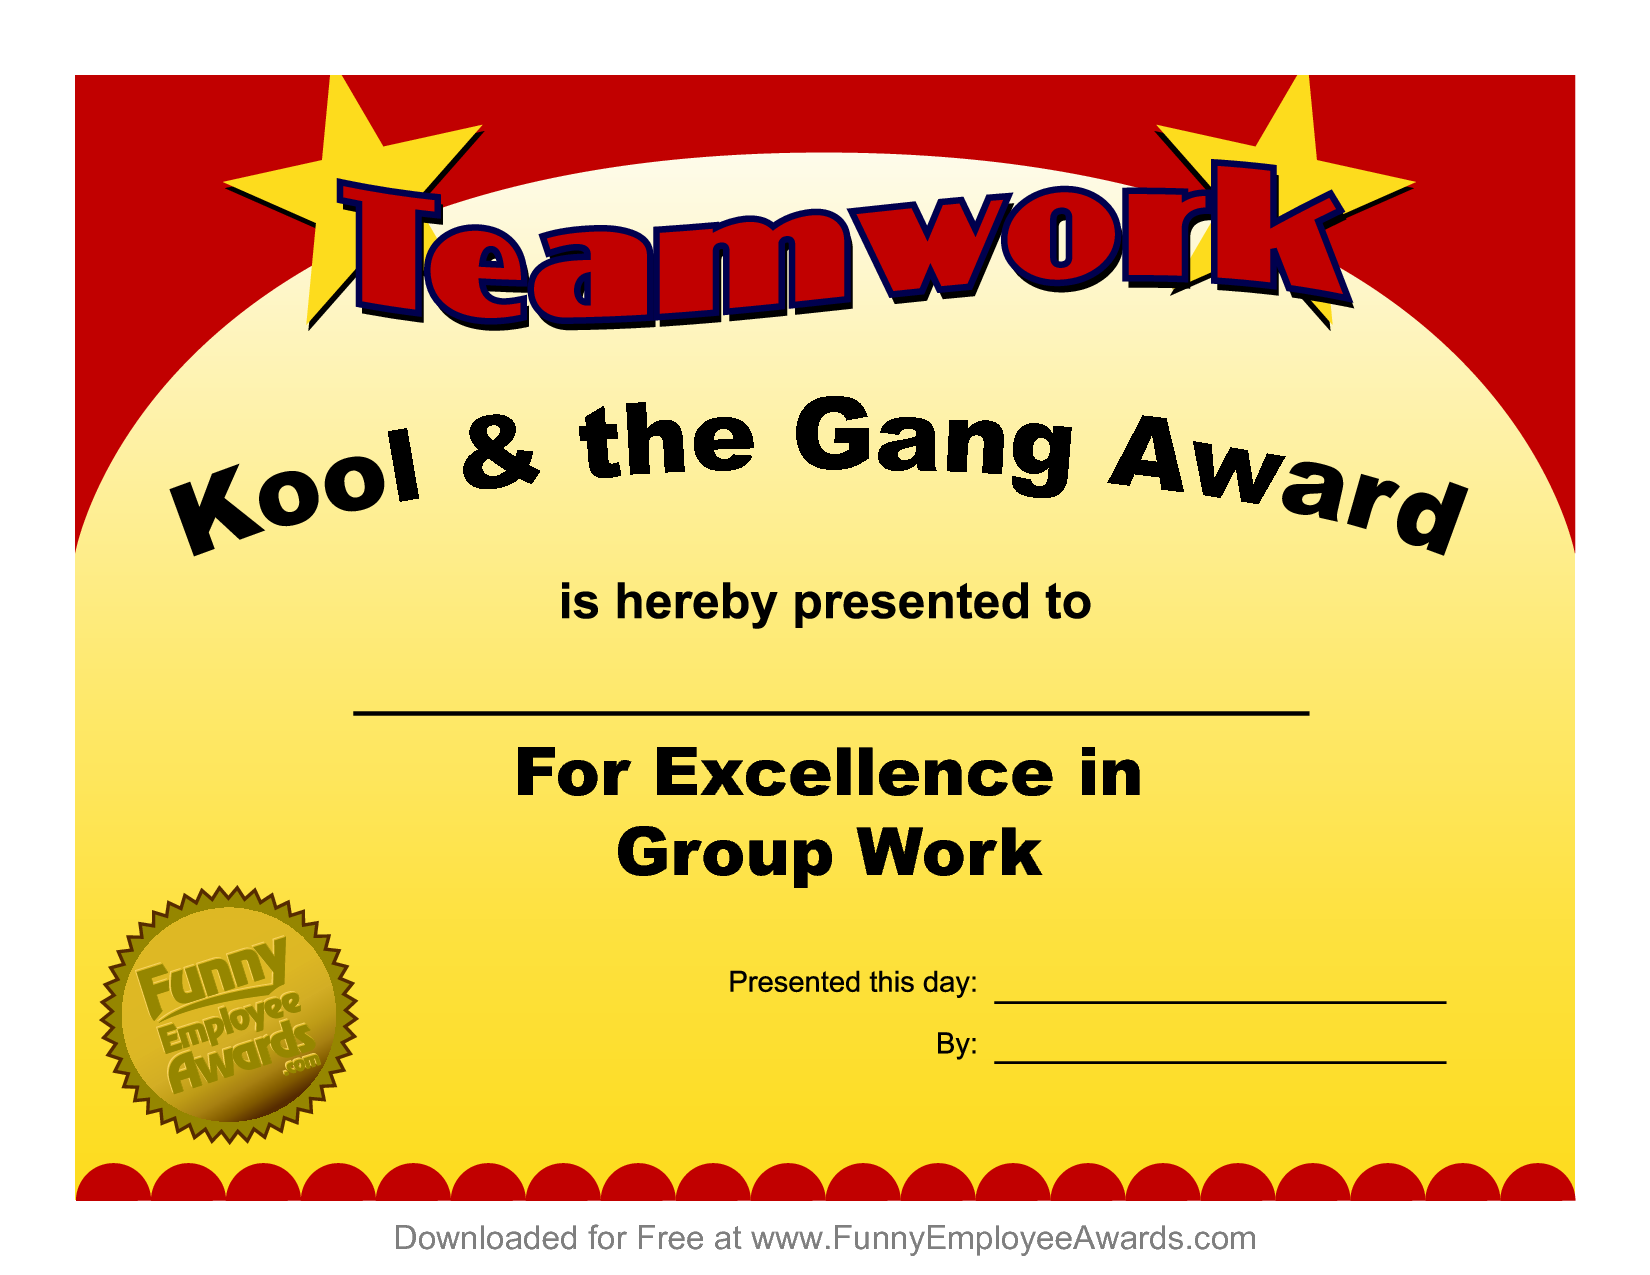 Funny employee awards google search pinteres this list of funny certificates is humorous fun and provides great ideas for teacher recognition awards alramifo Choice Image